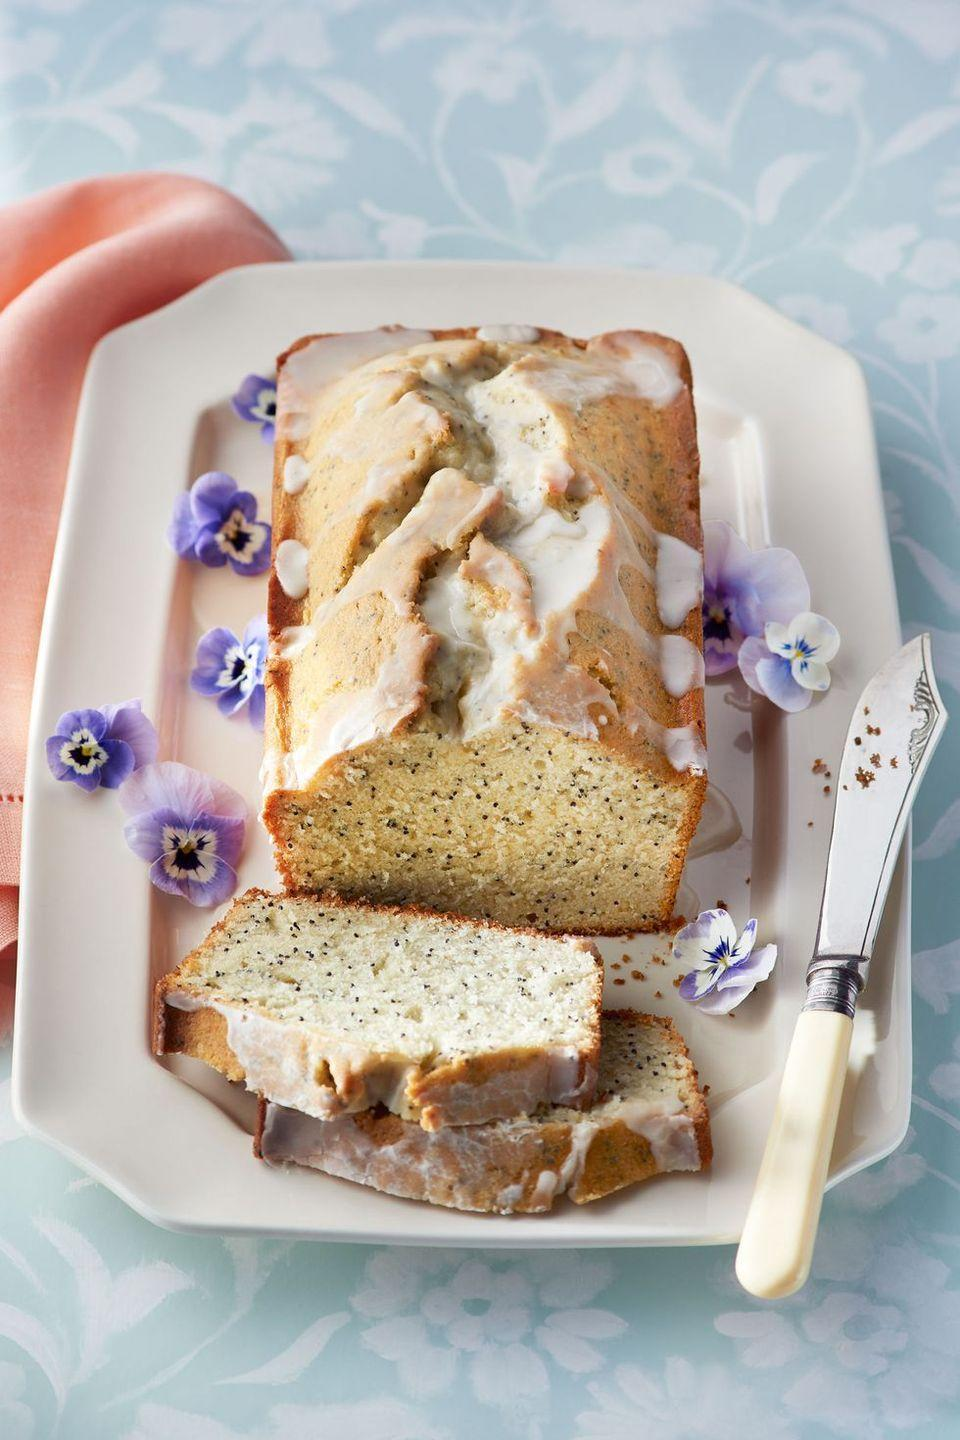 """<p>Serve this light and nutty loaf cake with a cup of hot tea for the day's grand finale.</p><p><em><a href=""""https://www.countryliving.com/food-drinks/recipes/a37725/almond-and-poppy-seed-loaf-cake-recipe/"""" rel=""""nofollow noopener"""" target=""""_blank"""" data-ylk=""""slk:Get the recipe from Country Living »"""" class=""""link rapid-noclick-resp"""">Get the recipe from Country Living »</a></em></p>"""